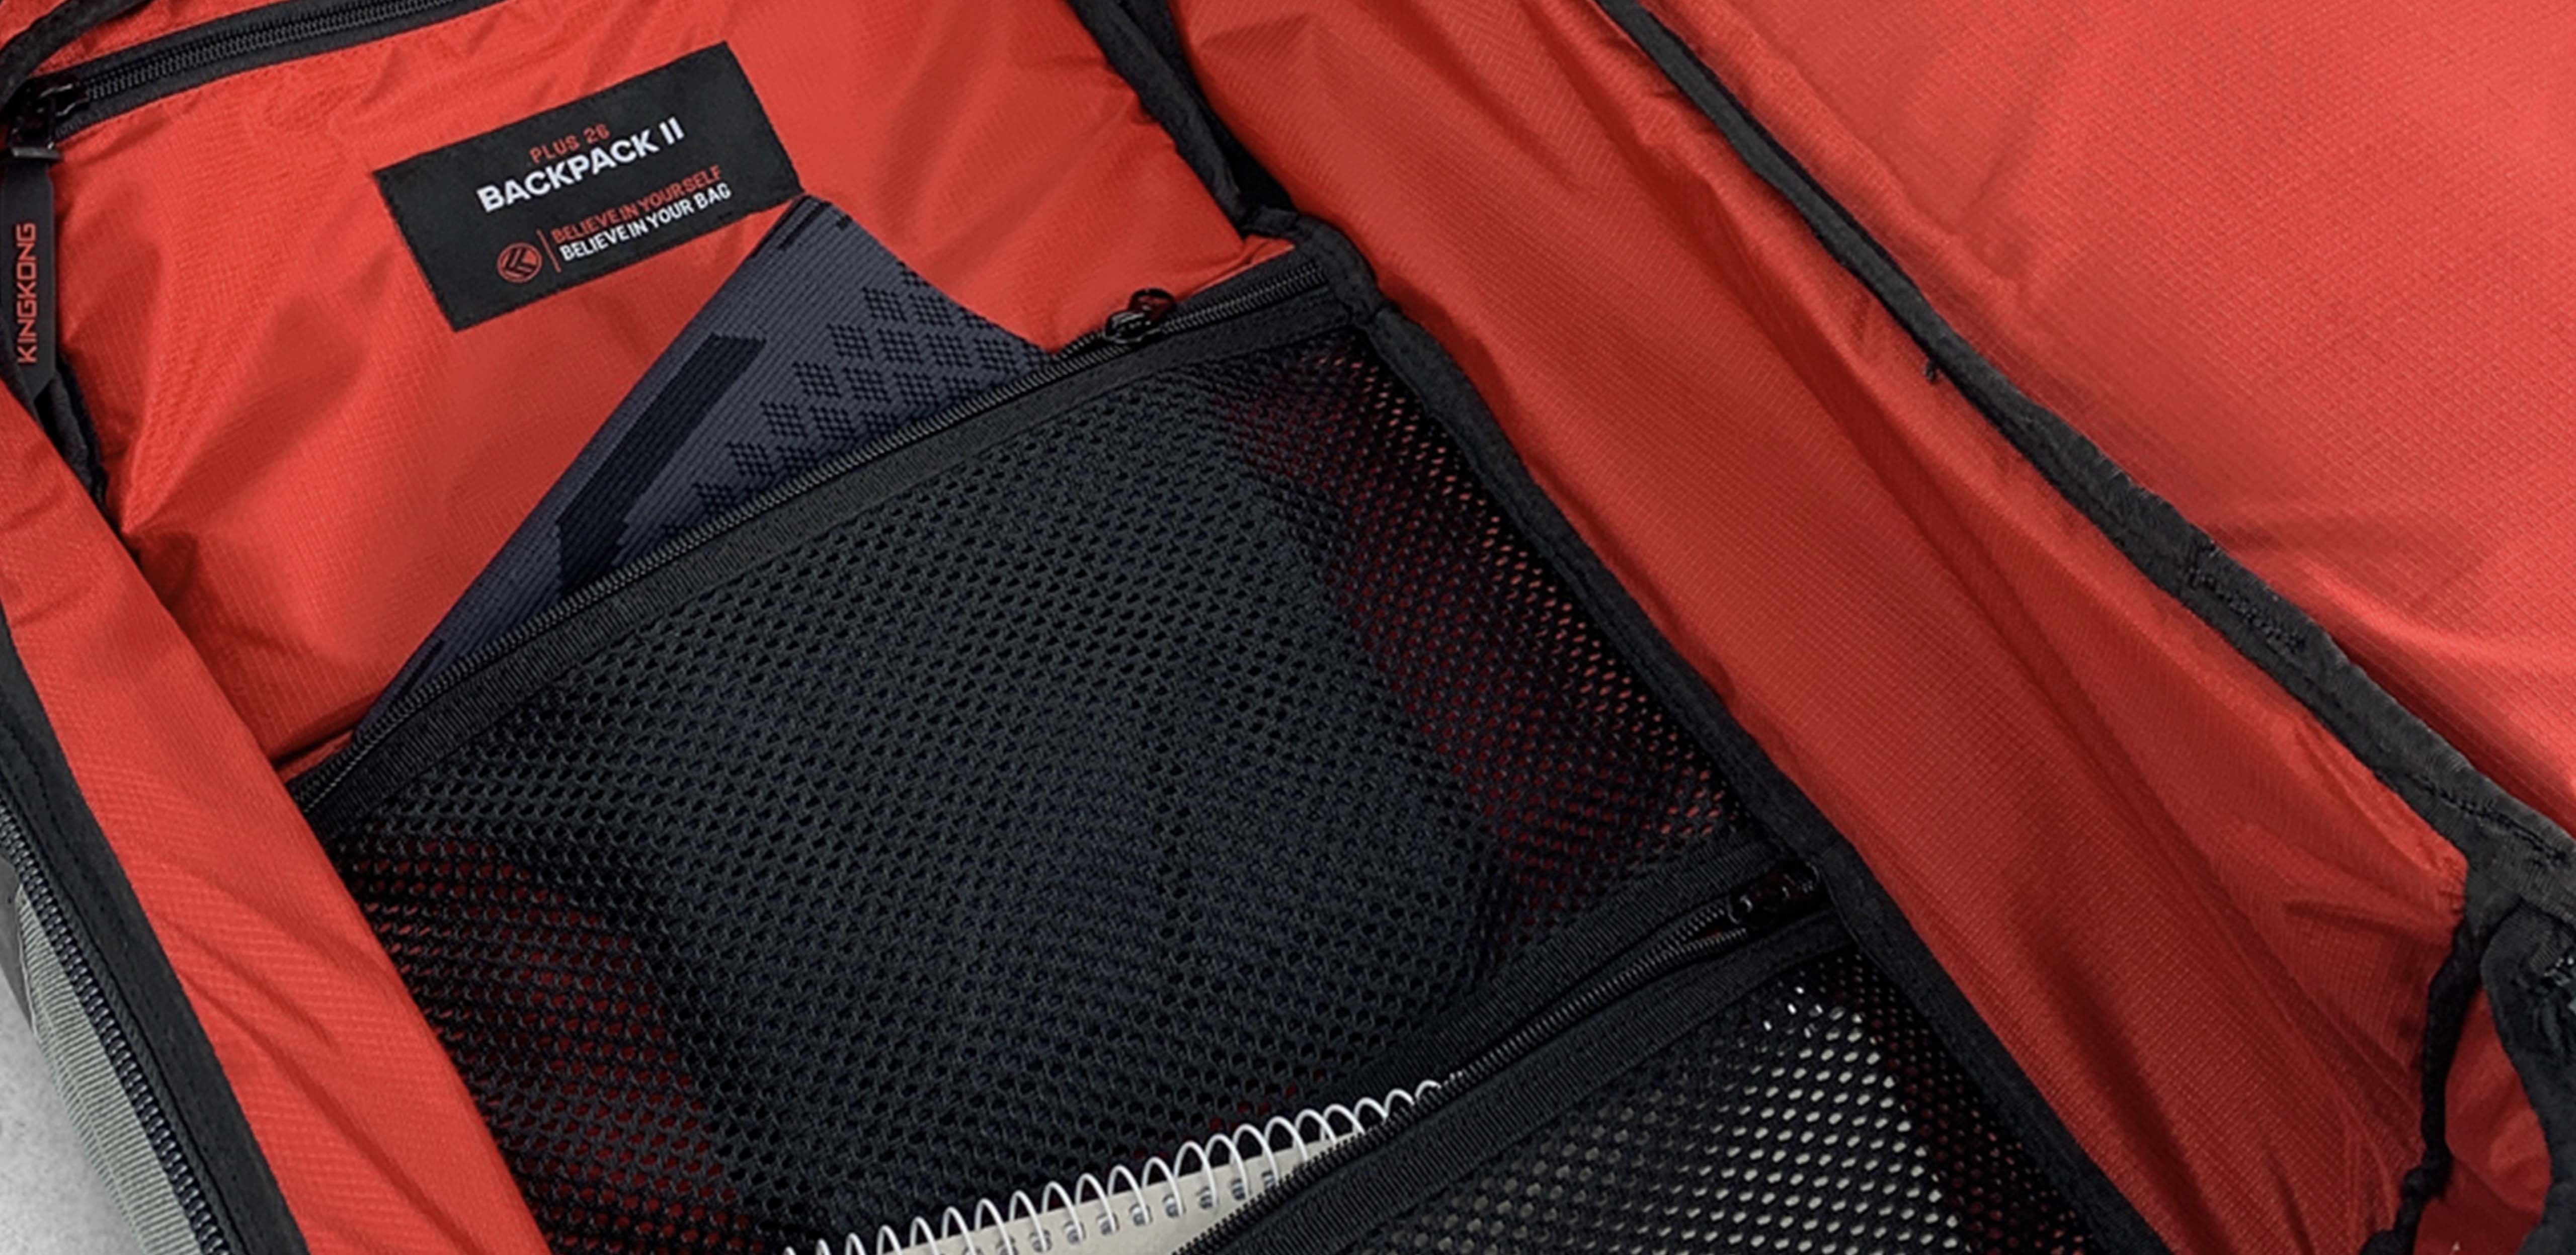 Clamshell style opening on the backpack for easy packing